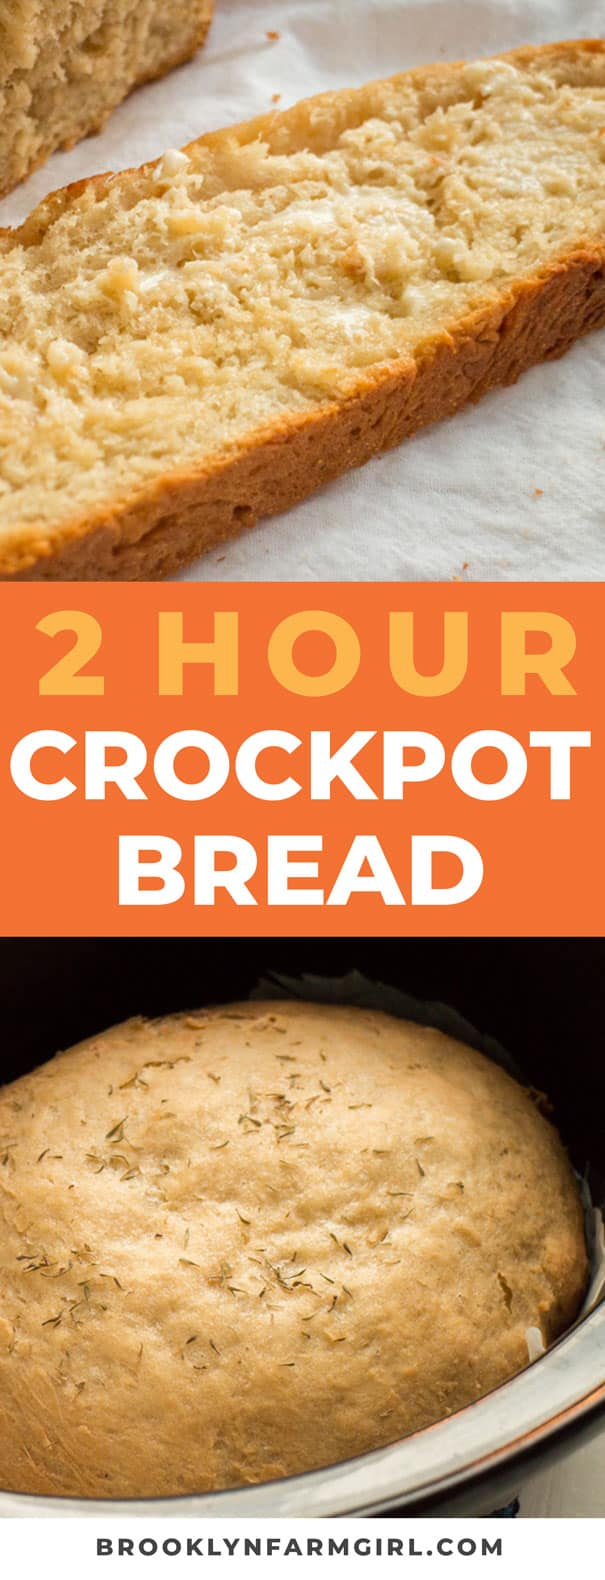 Easy to make 2 HOUR Crockpot Bread recipe. Throw it in the crock pot and you will have soft homemade bread in 2 hours! This is the best bread to serve with creamy soups and casseroles.